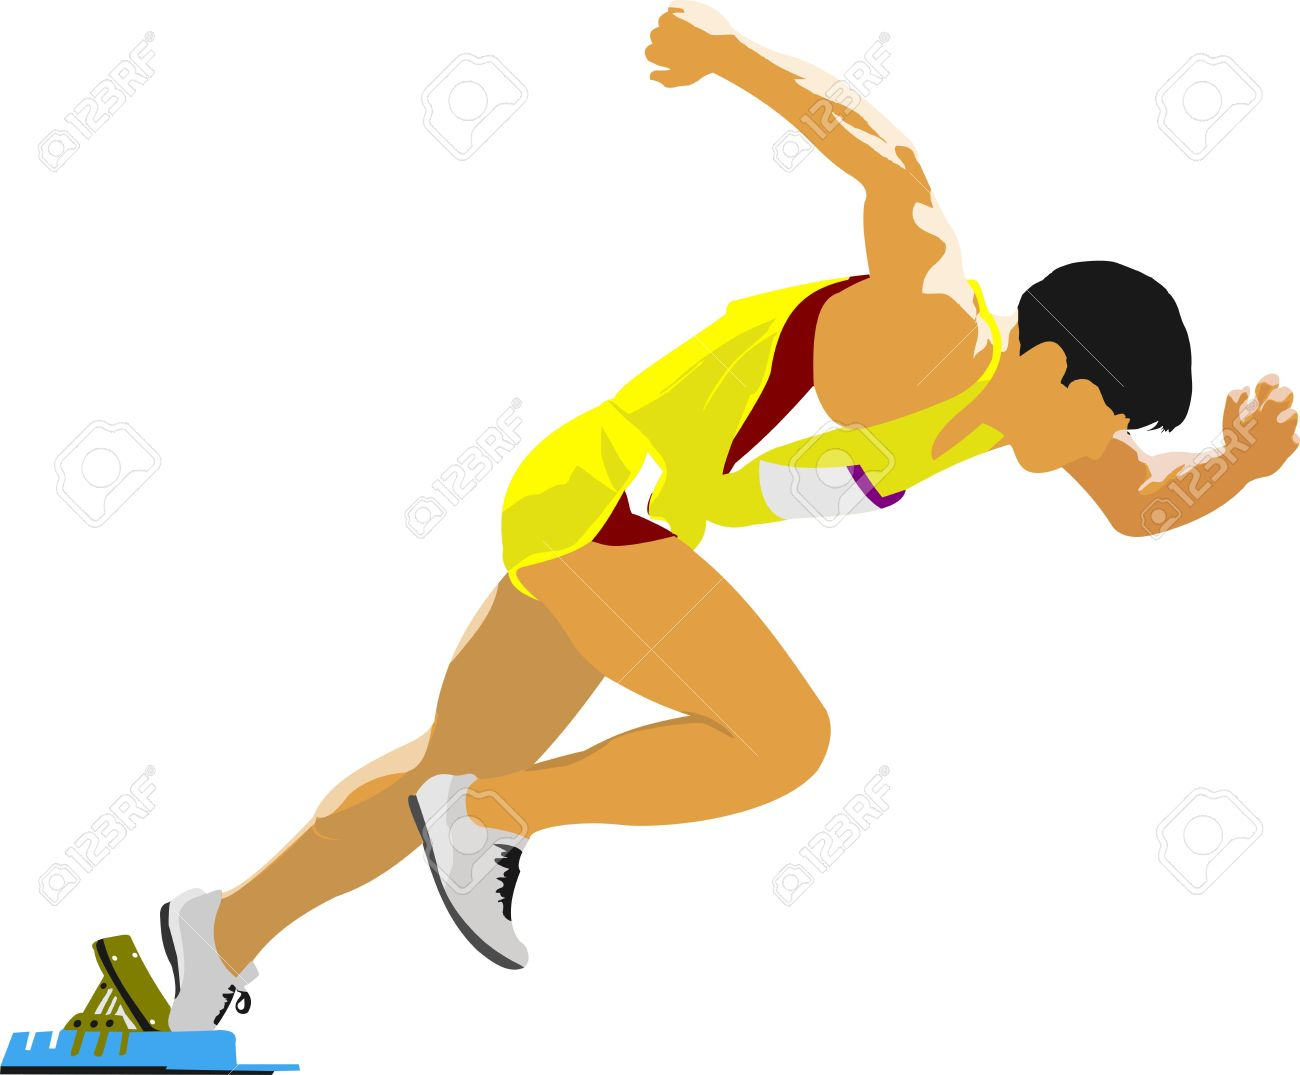 Athlete Clipart-athlete clipart-1